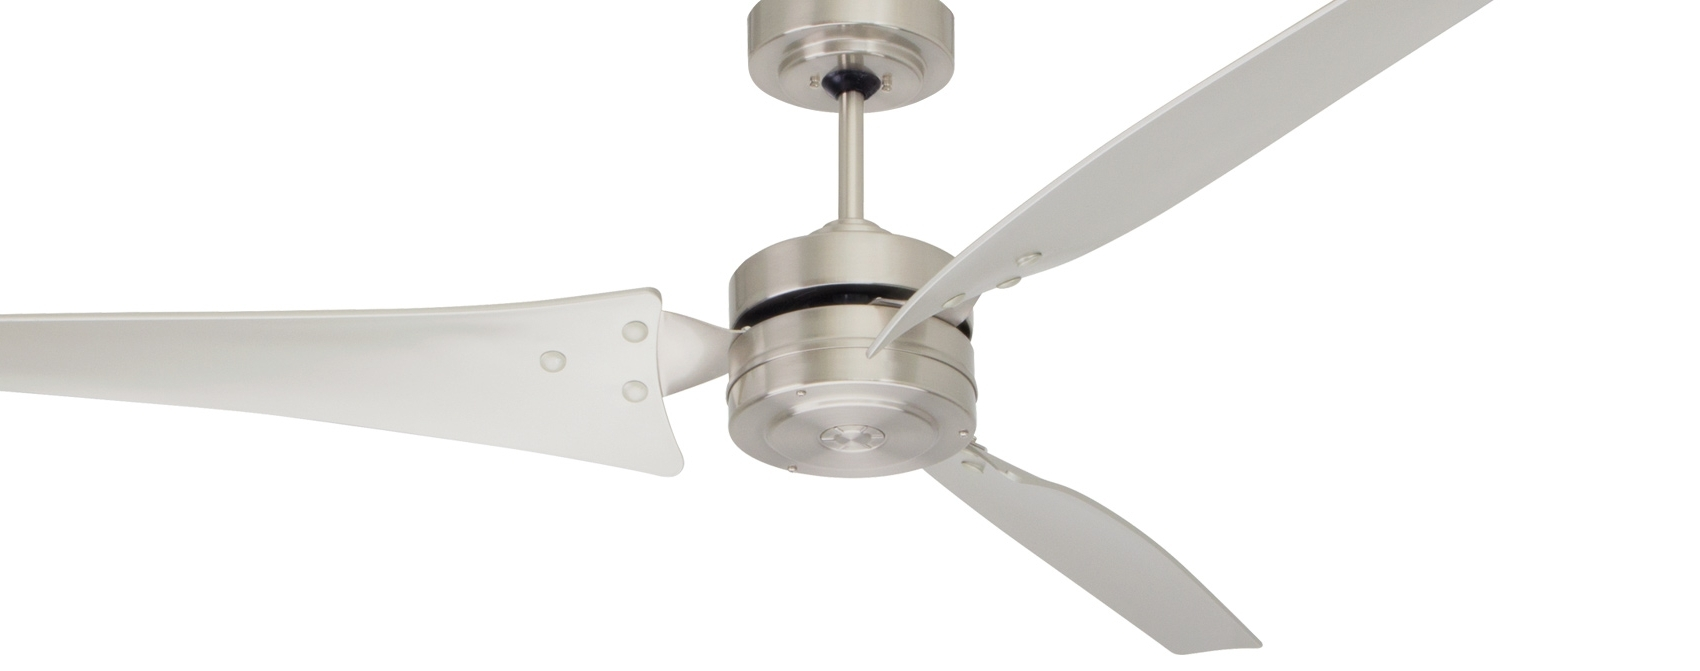 High Performance Intended For High End Outdoor Ceiling Fans (View 13 of 20)